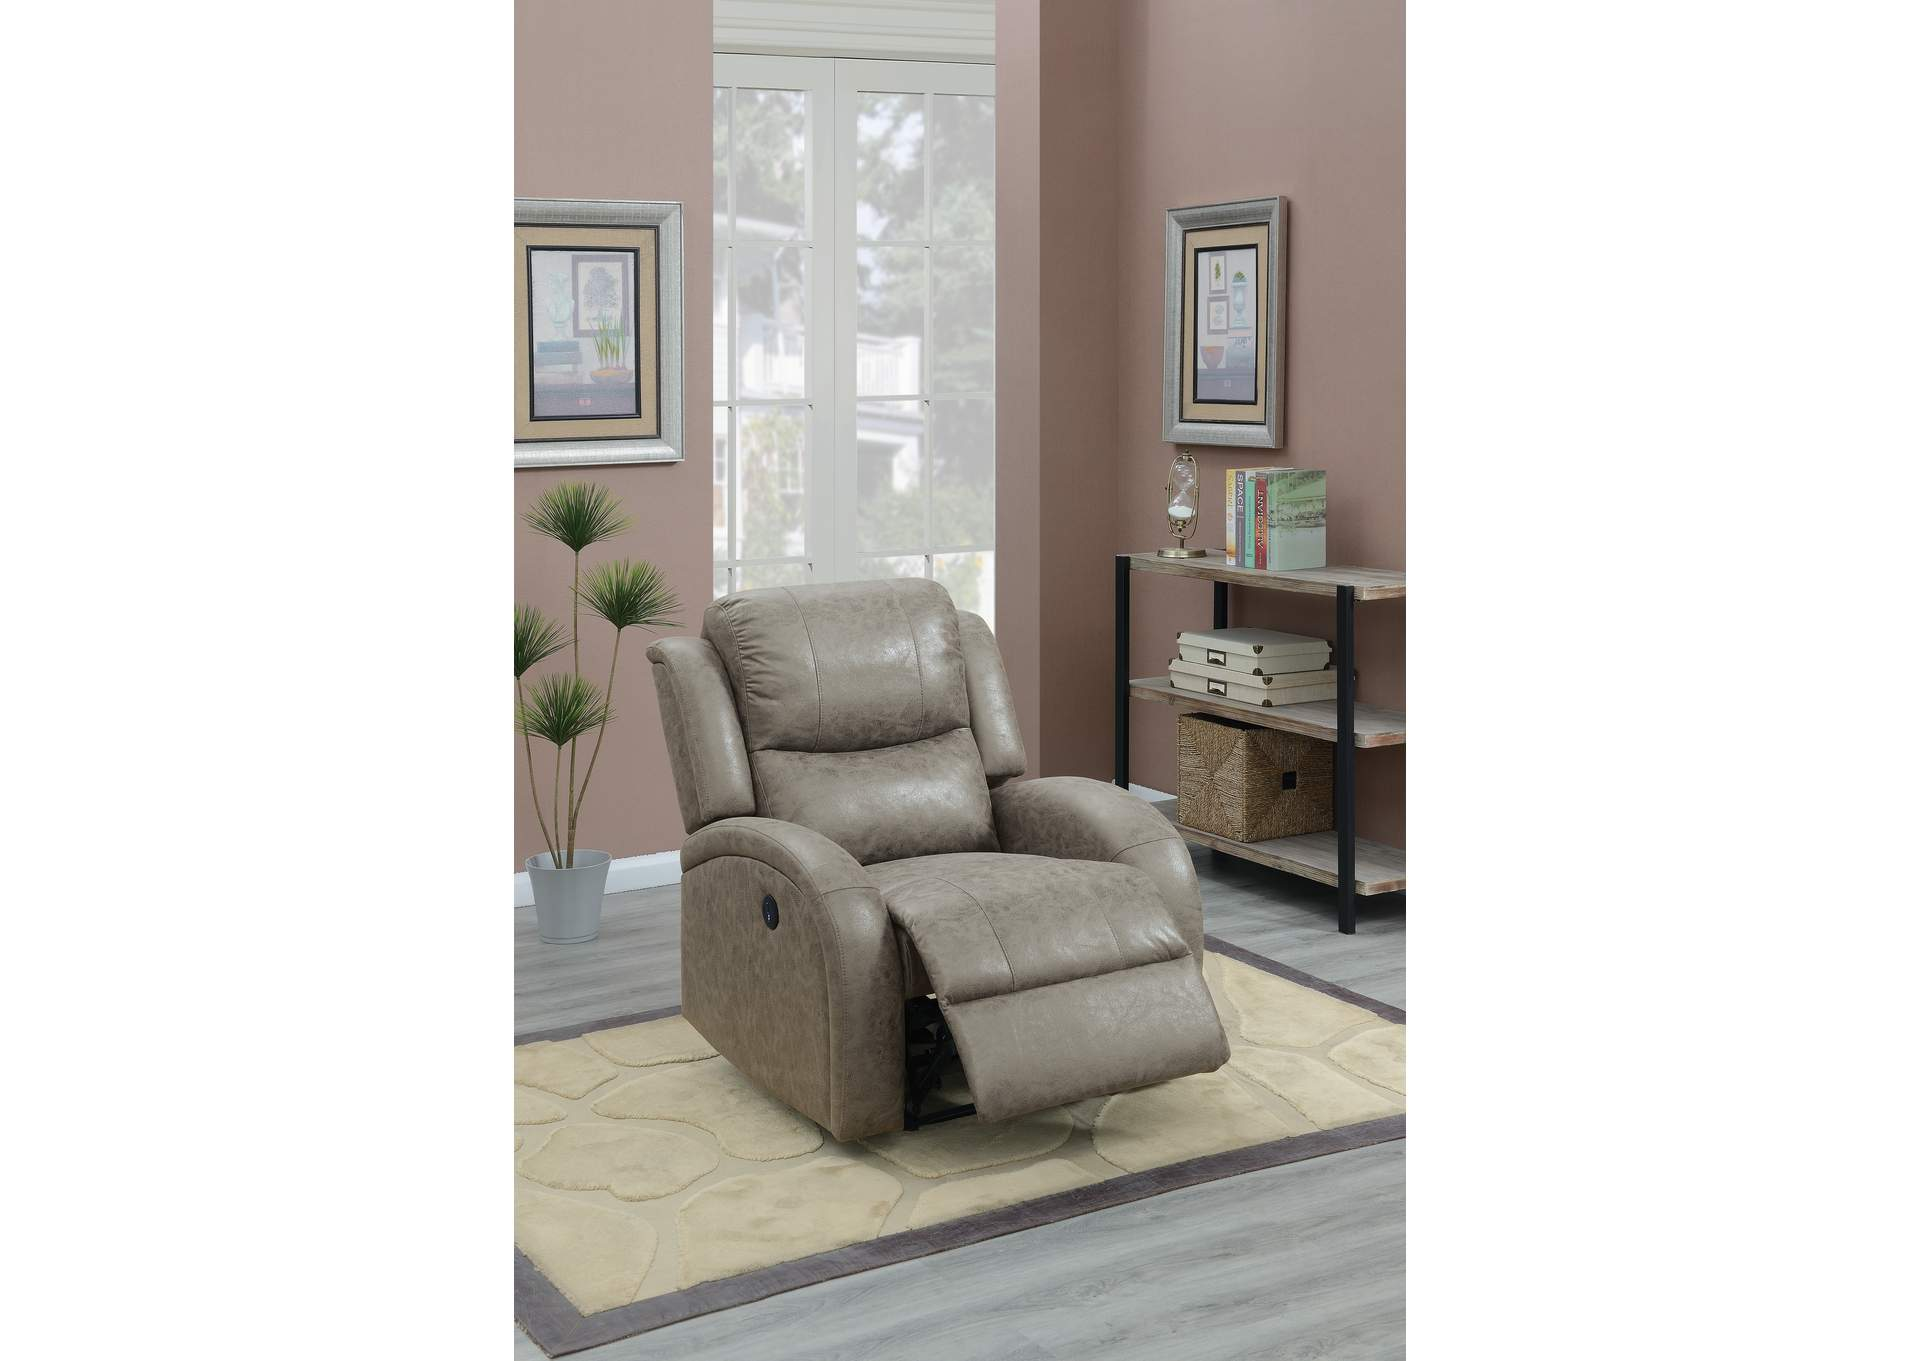 Taiyus Stone Power Recliner,Poundex